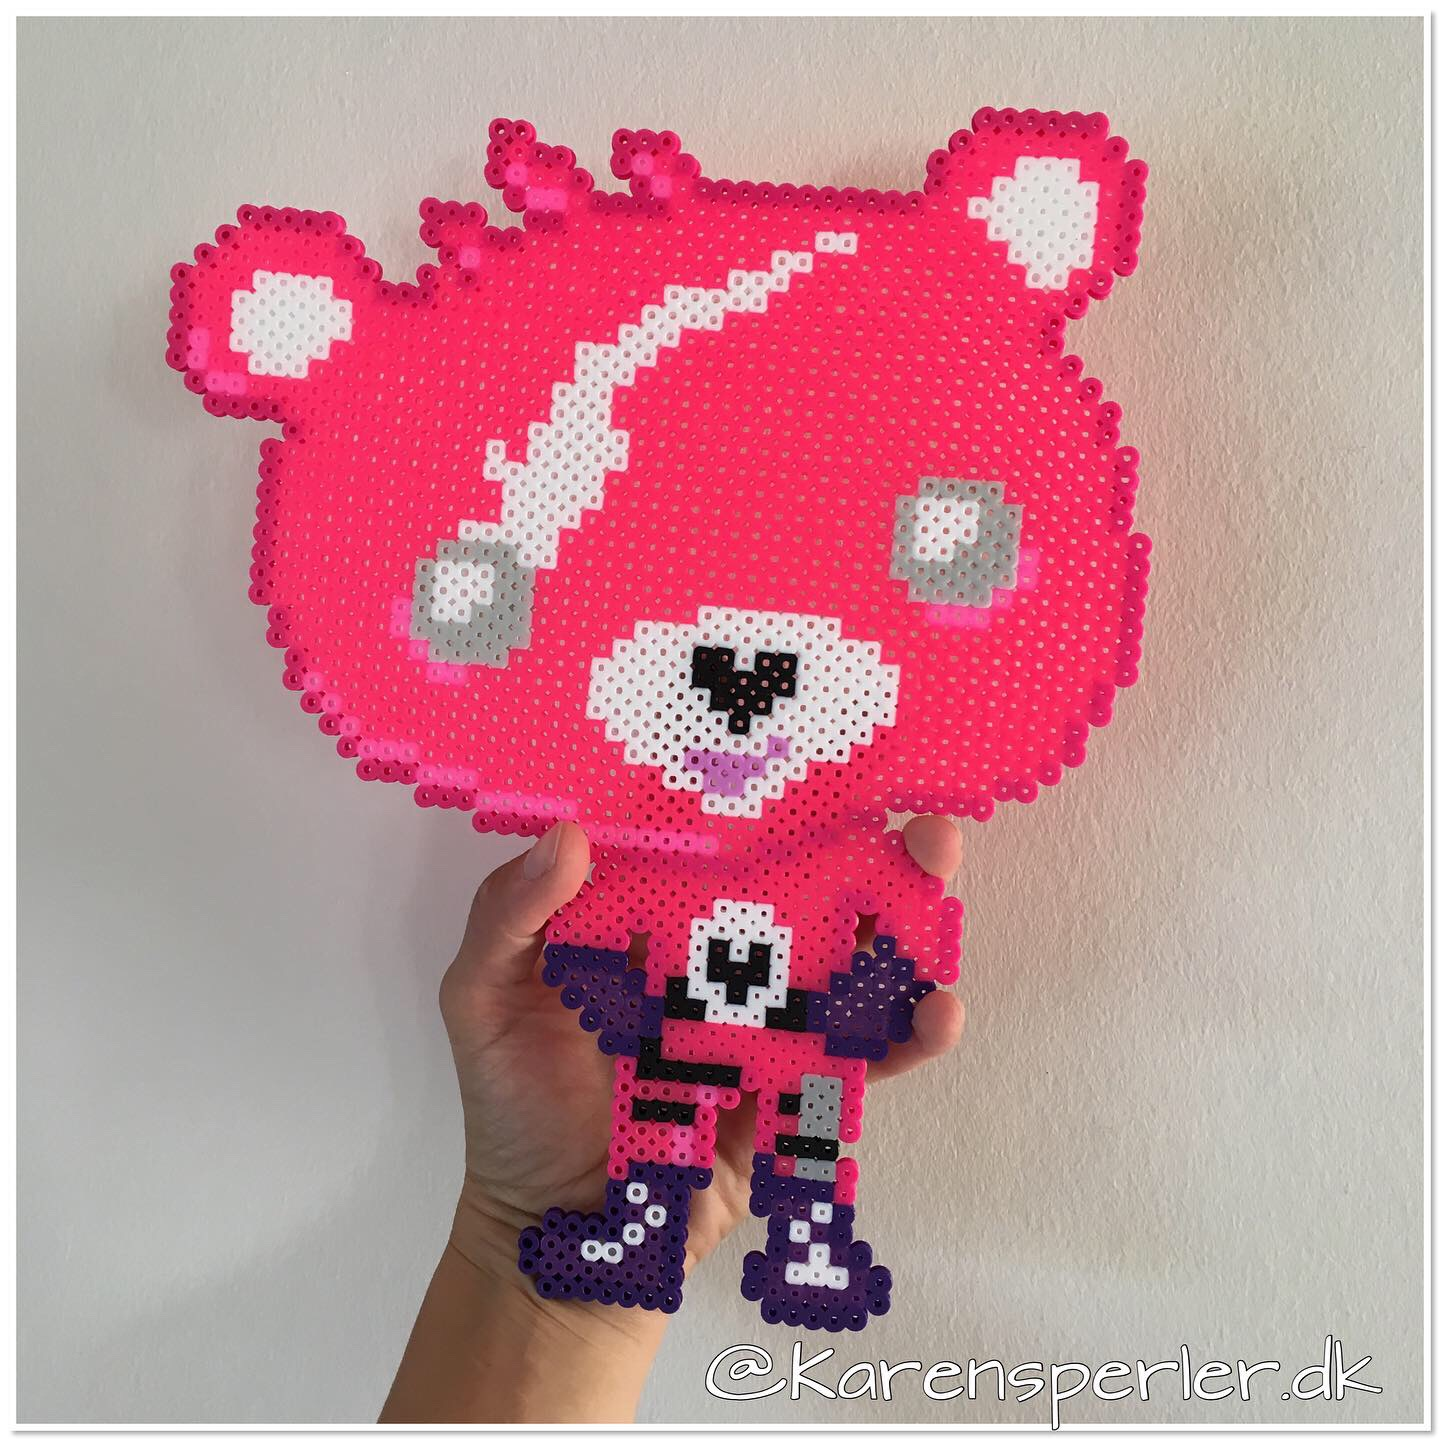 Cuddle team leader Fortnite perler